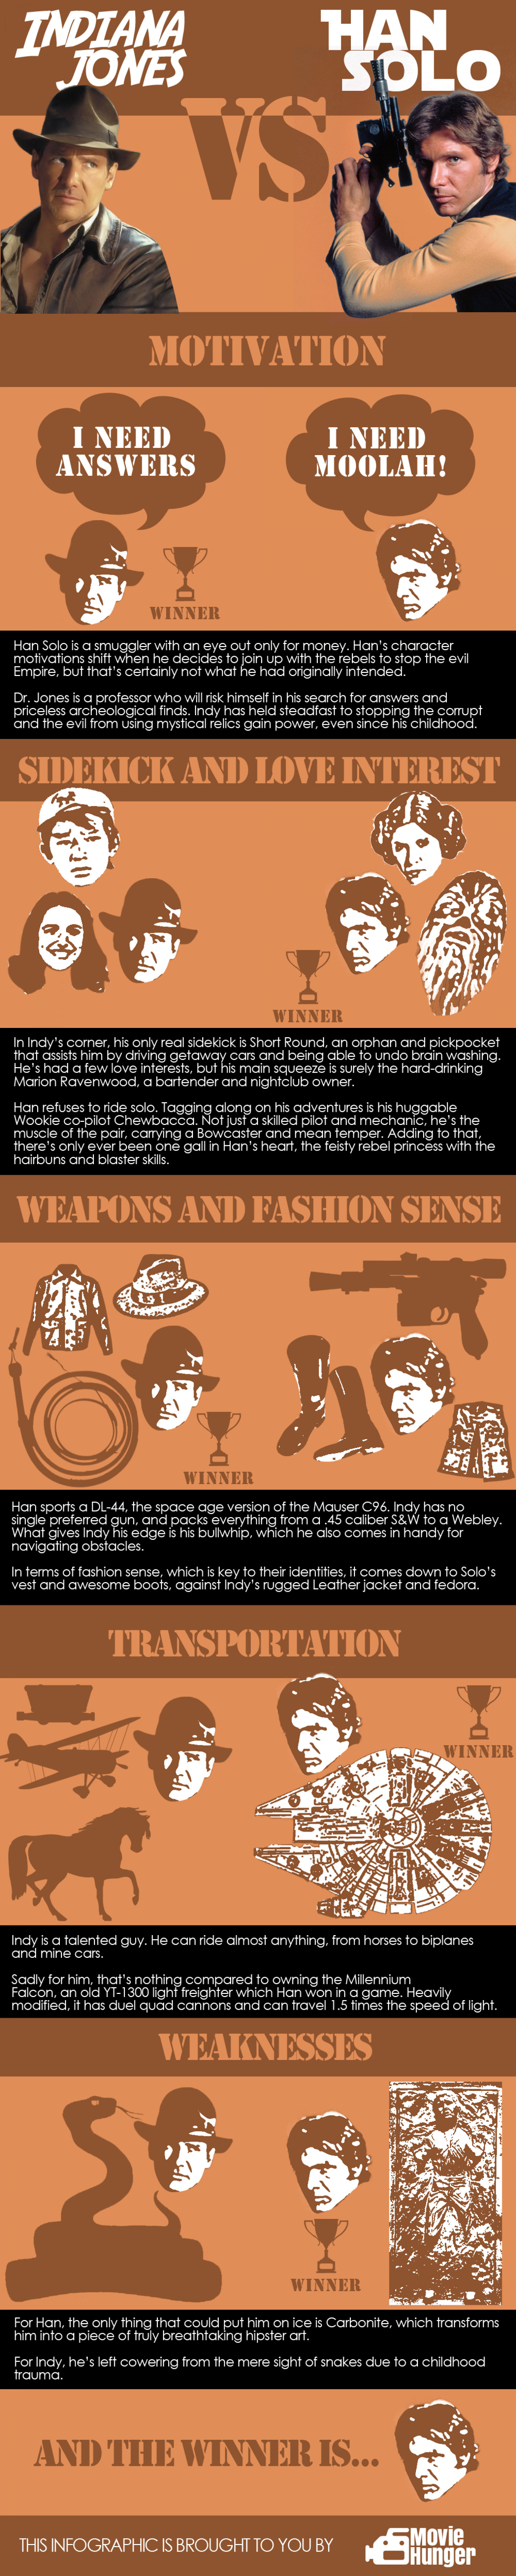 Indiana Jones VS Han Solo Infographic